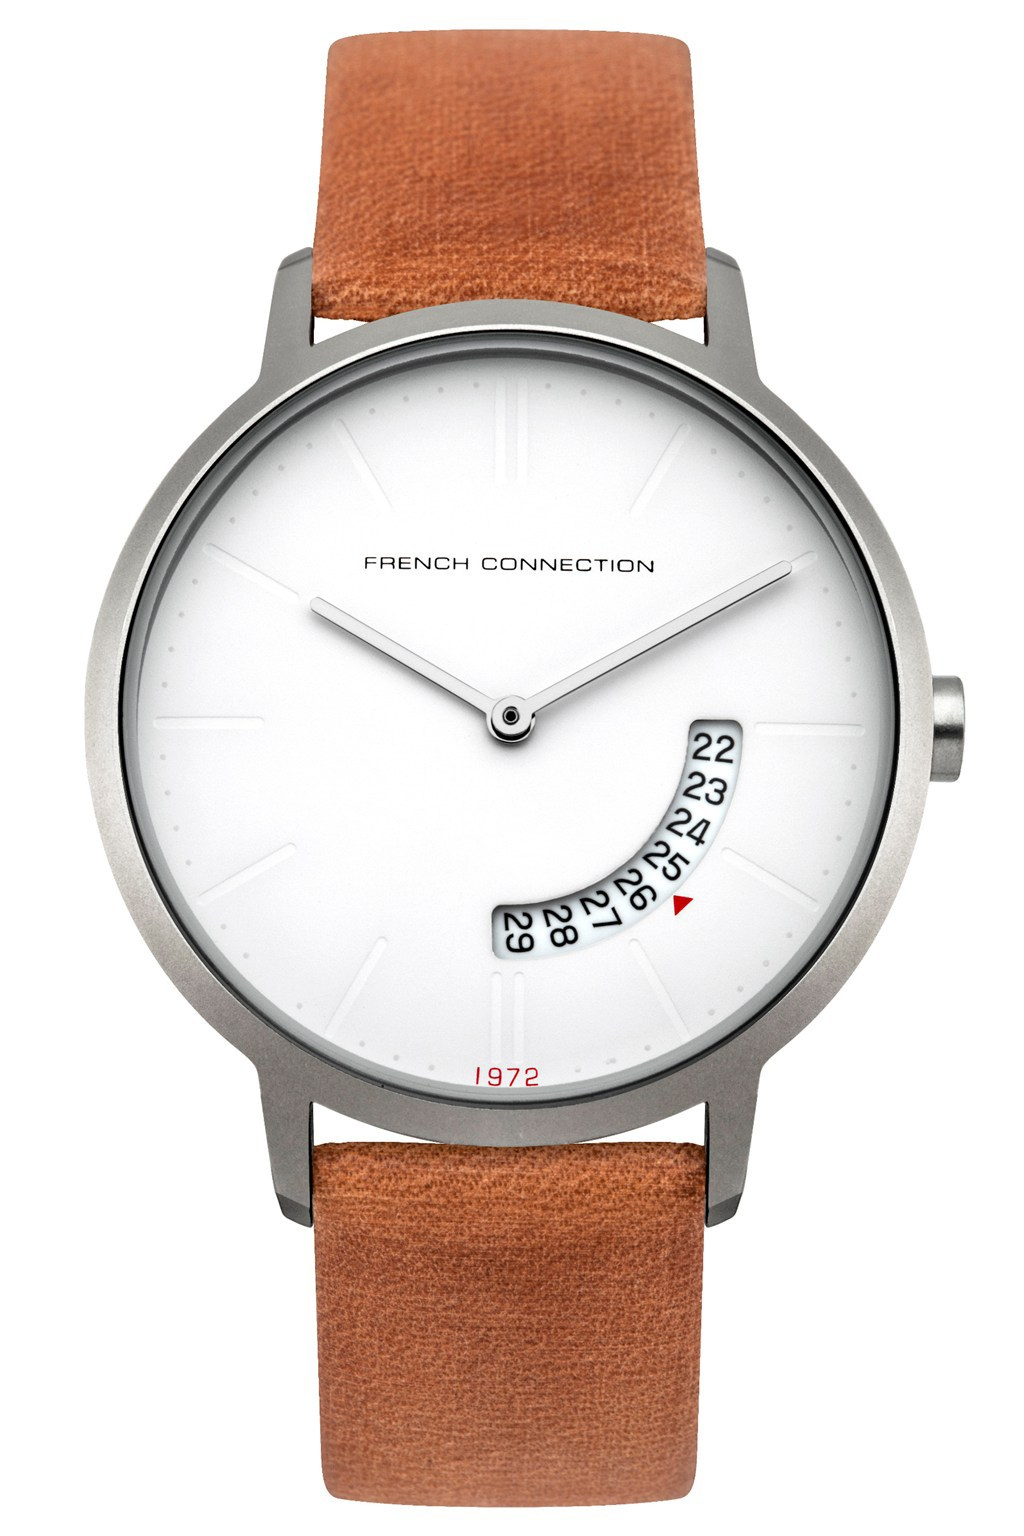 39MM Brown Leather Strap Watch | Mens Accessories